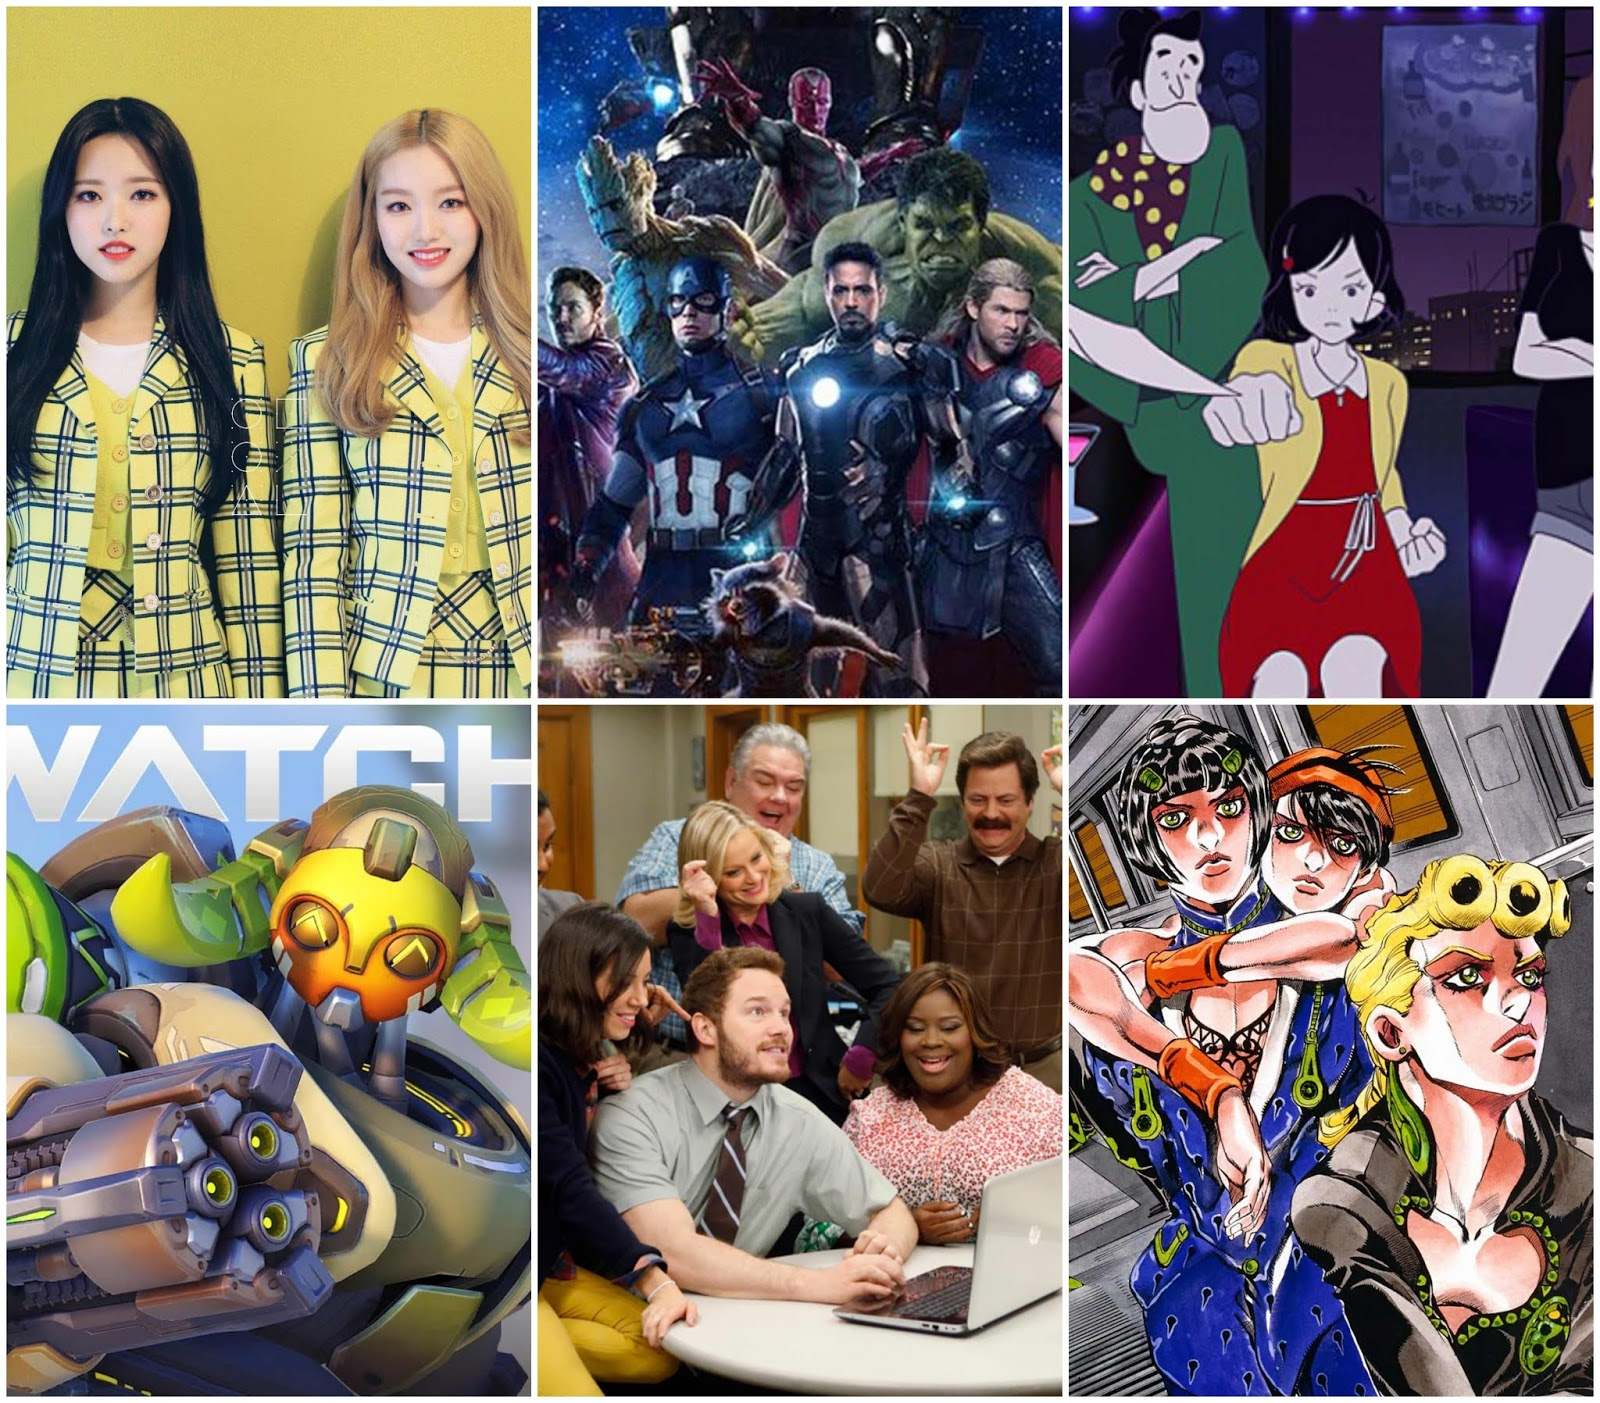 loona mcu overwatch parks and rec yuasa